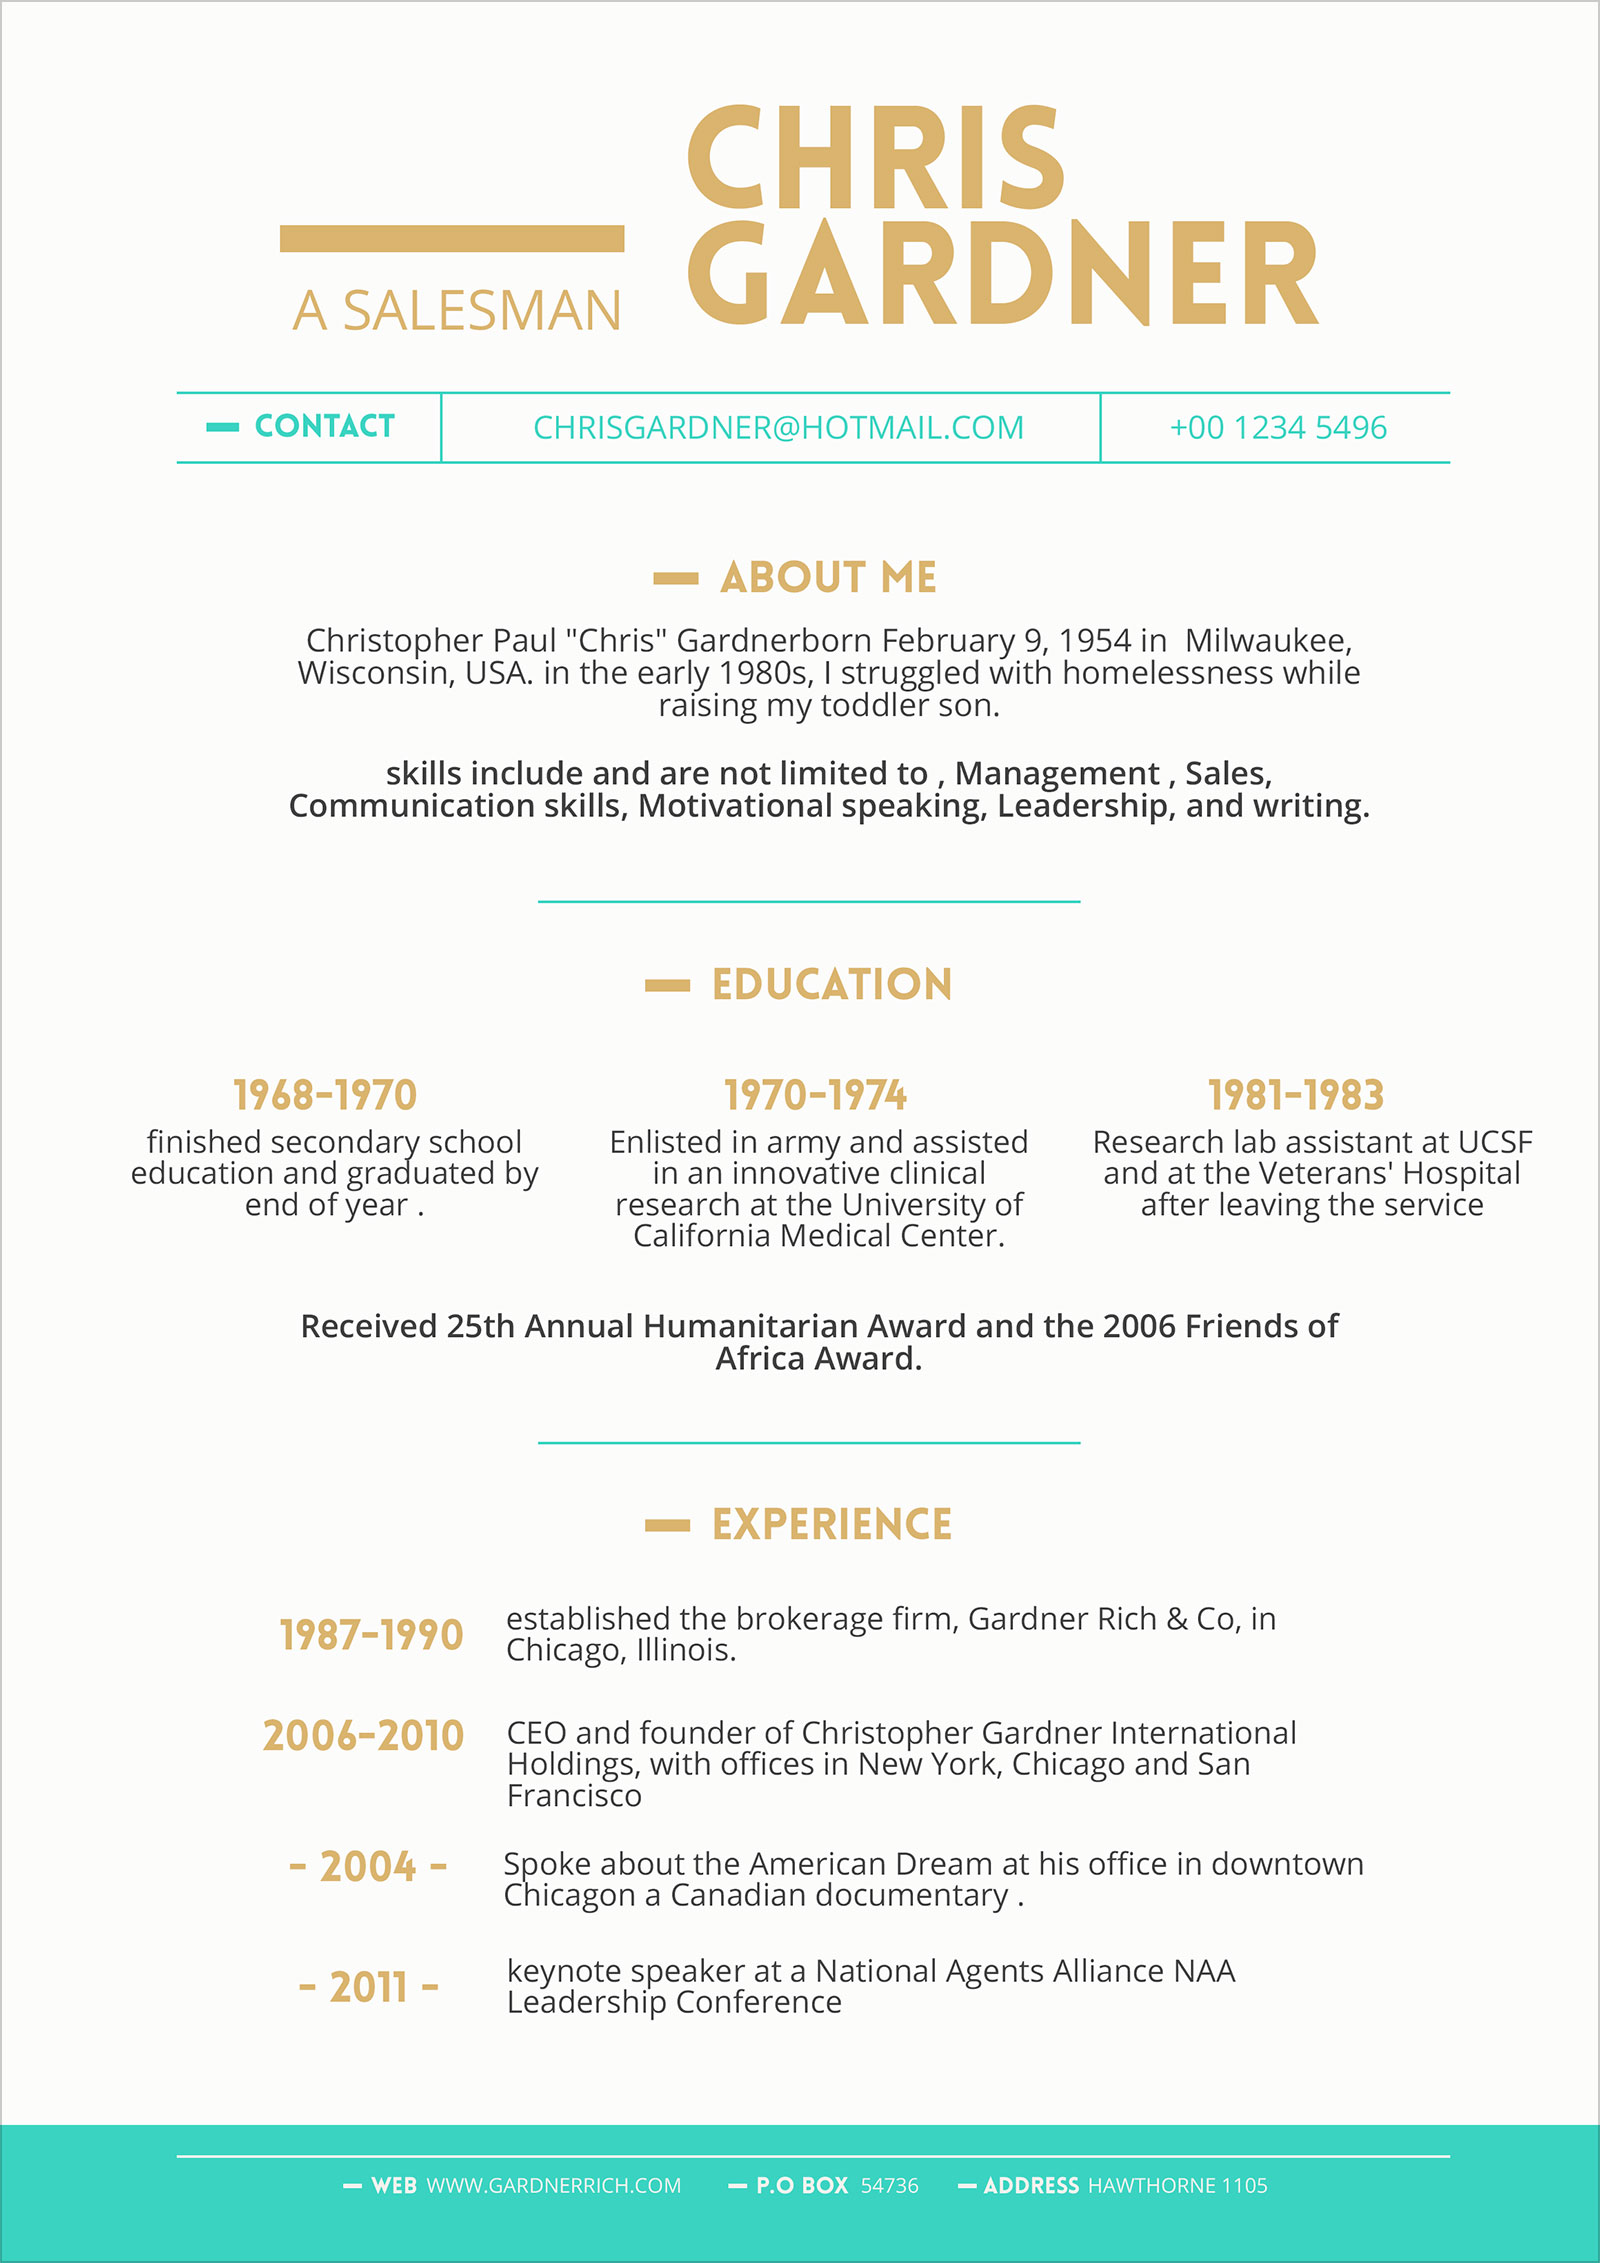 Free-Minimalistic-Resume-Template-in-Photoshop-PSD-Format